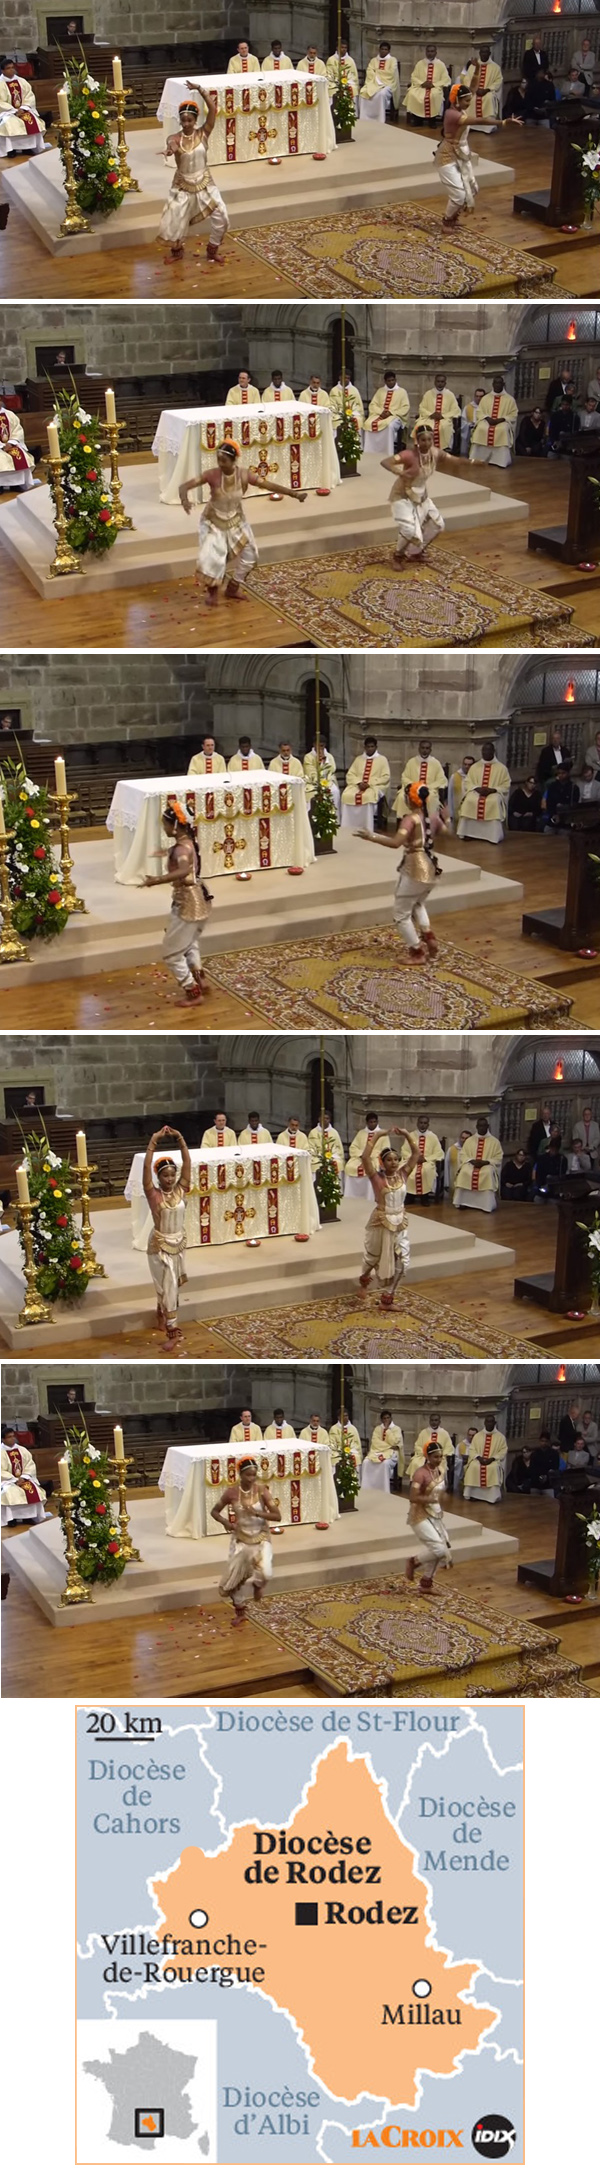 Hindu dances at Rodez Cathedral